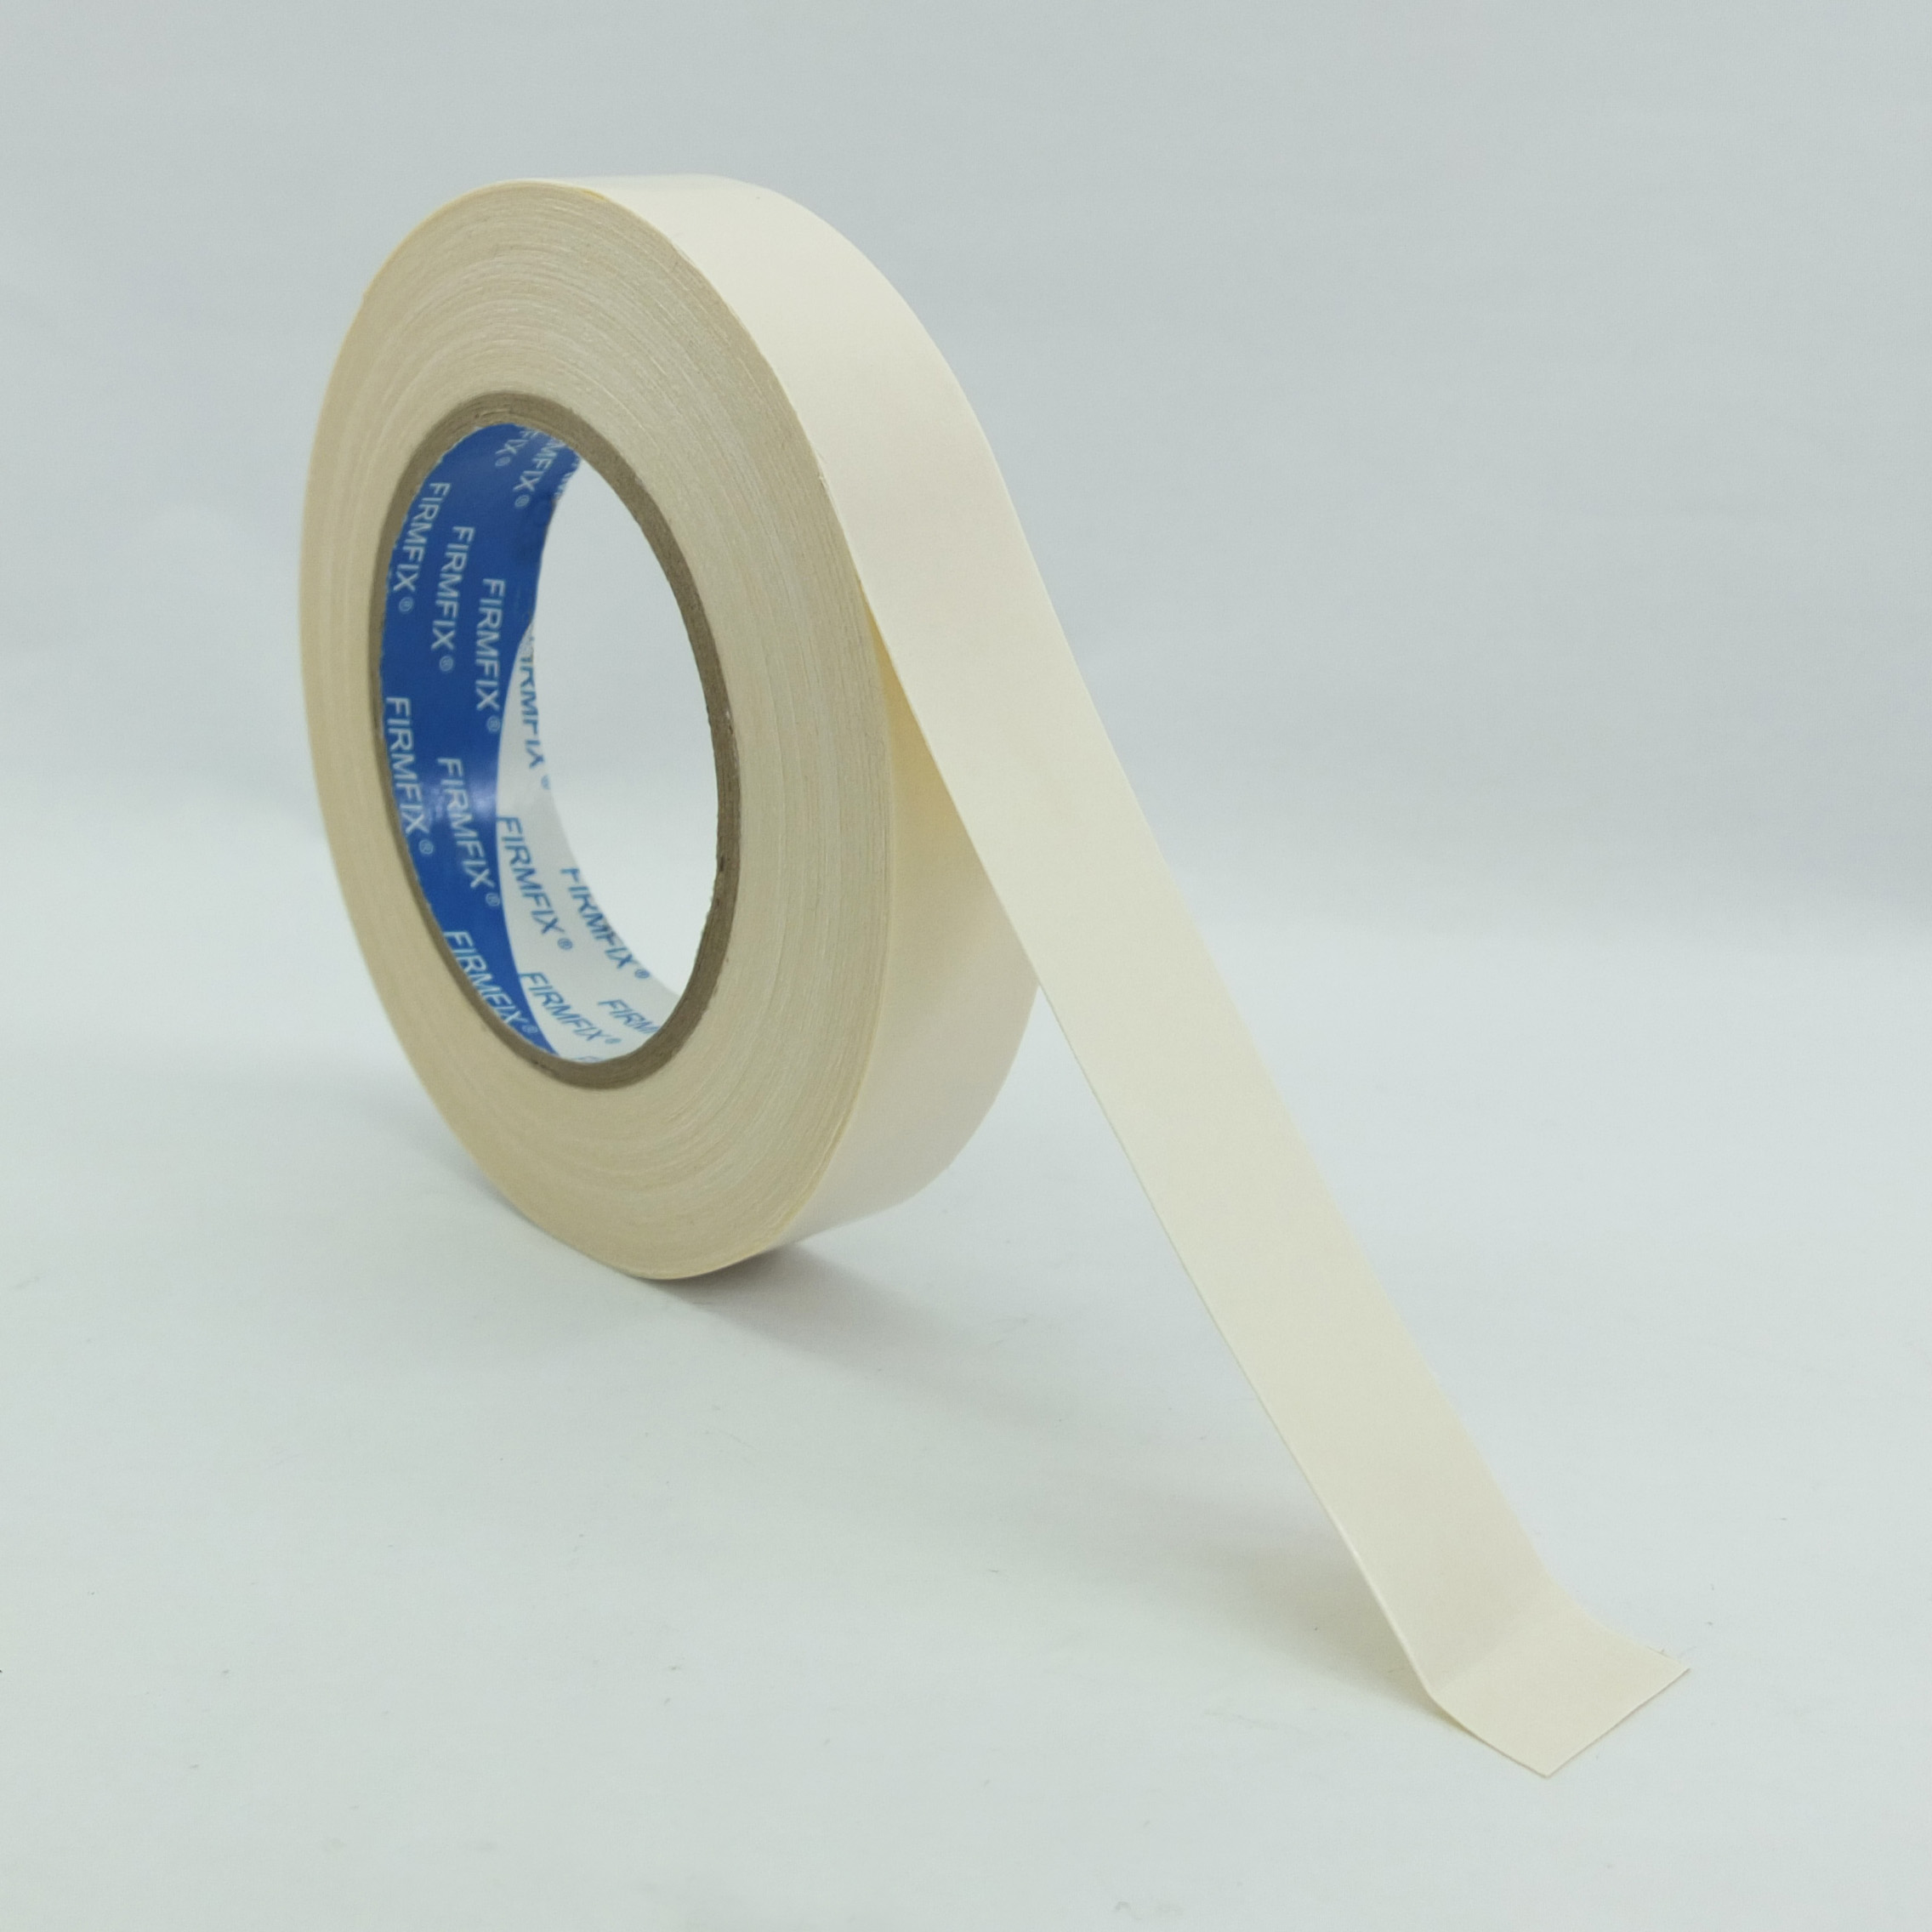 Exhibition Carpet Tape 4500 Home Depot Carpet